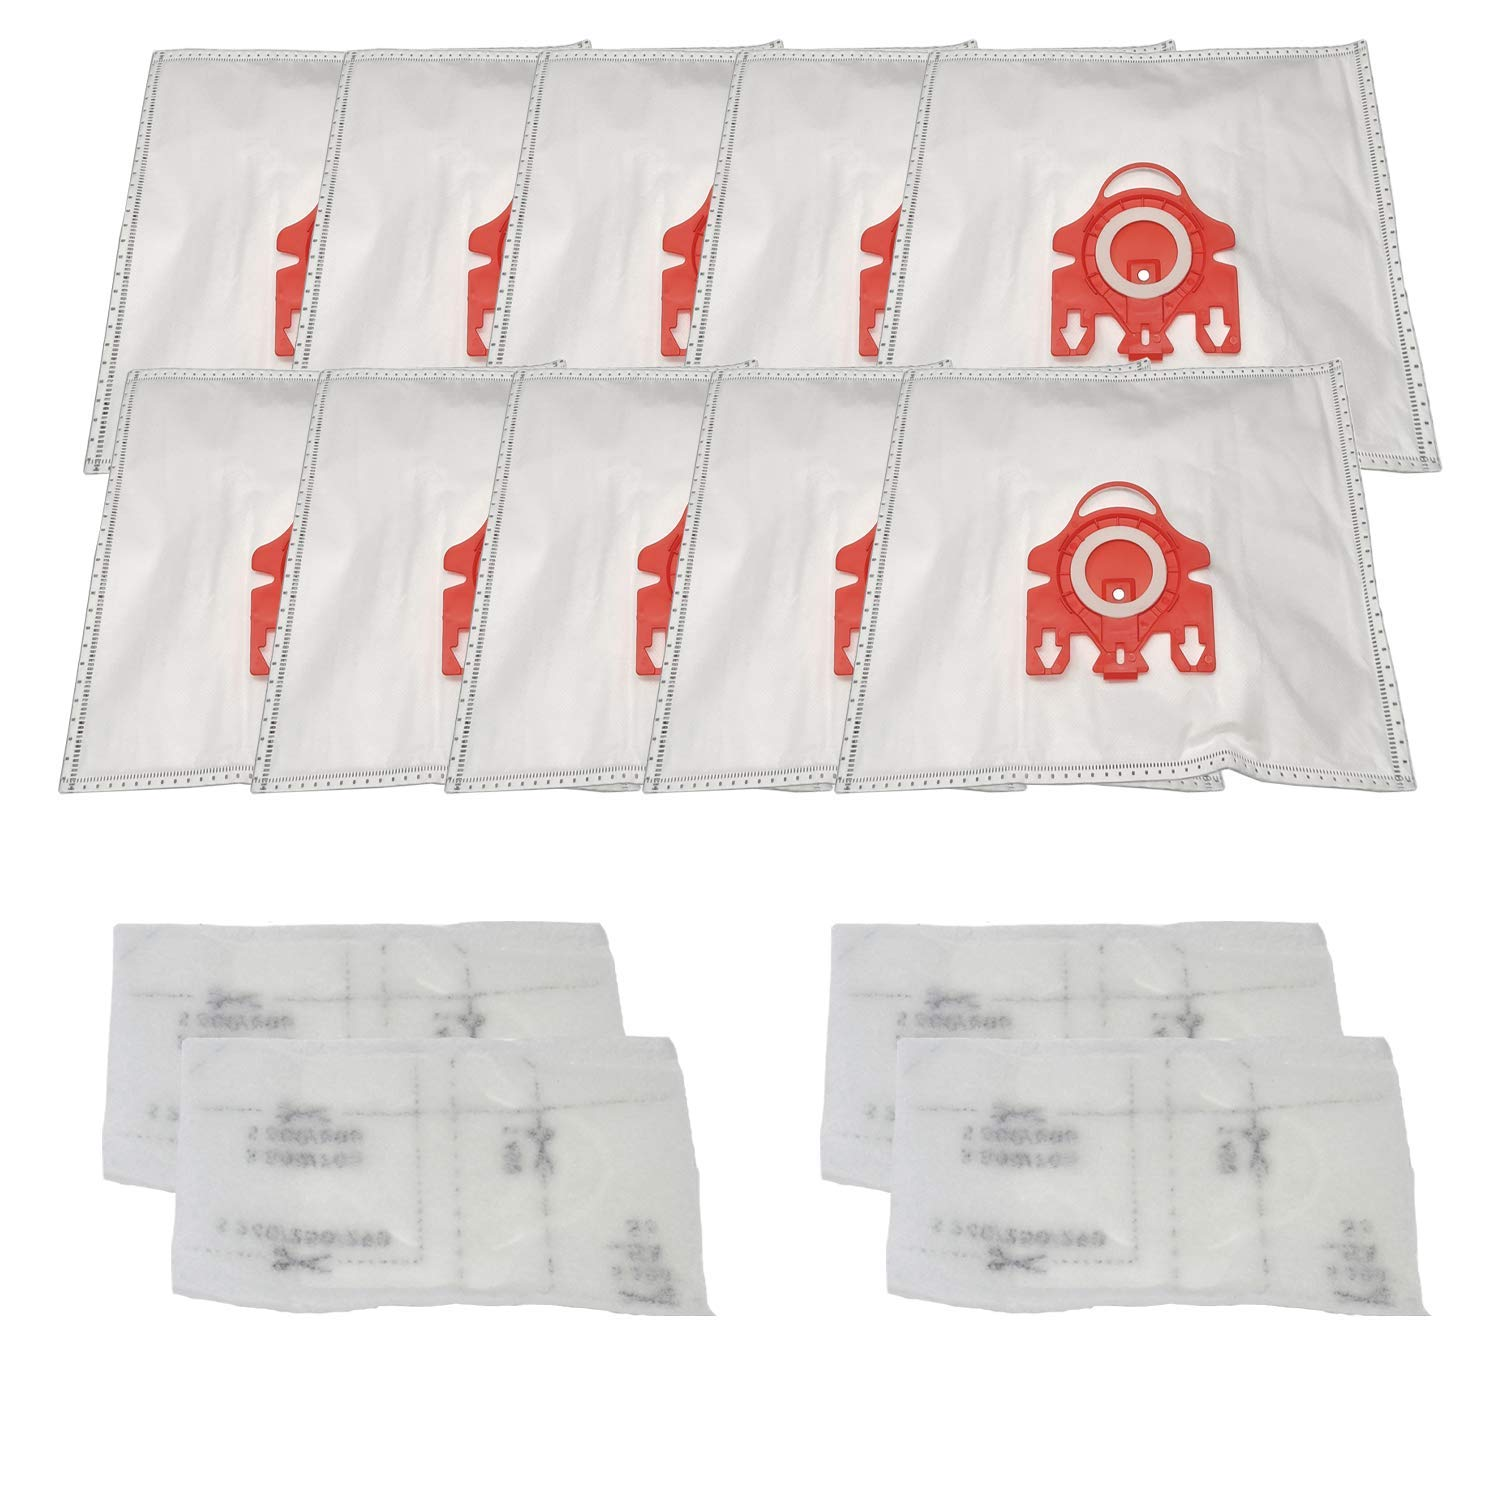 ZVac (10 Bags + 4 Filters)Compatible Vacuum Bags/Filters Replacement for Miele FJM Airclean Vacuum Bags.Replaces Part# 7291640.Fits S241-S256i, S290-S291, S300i-S399, S500-S578, S700-S758, S4000-S4999